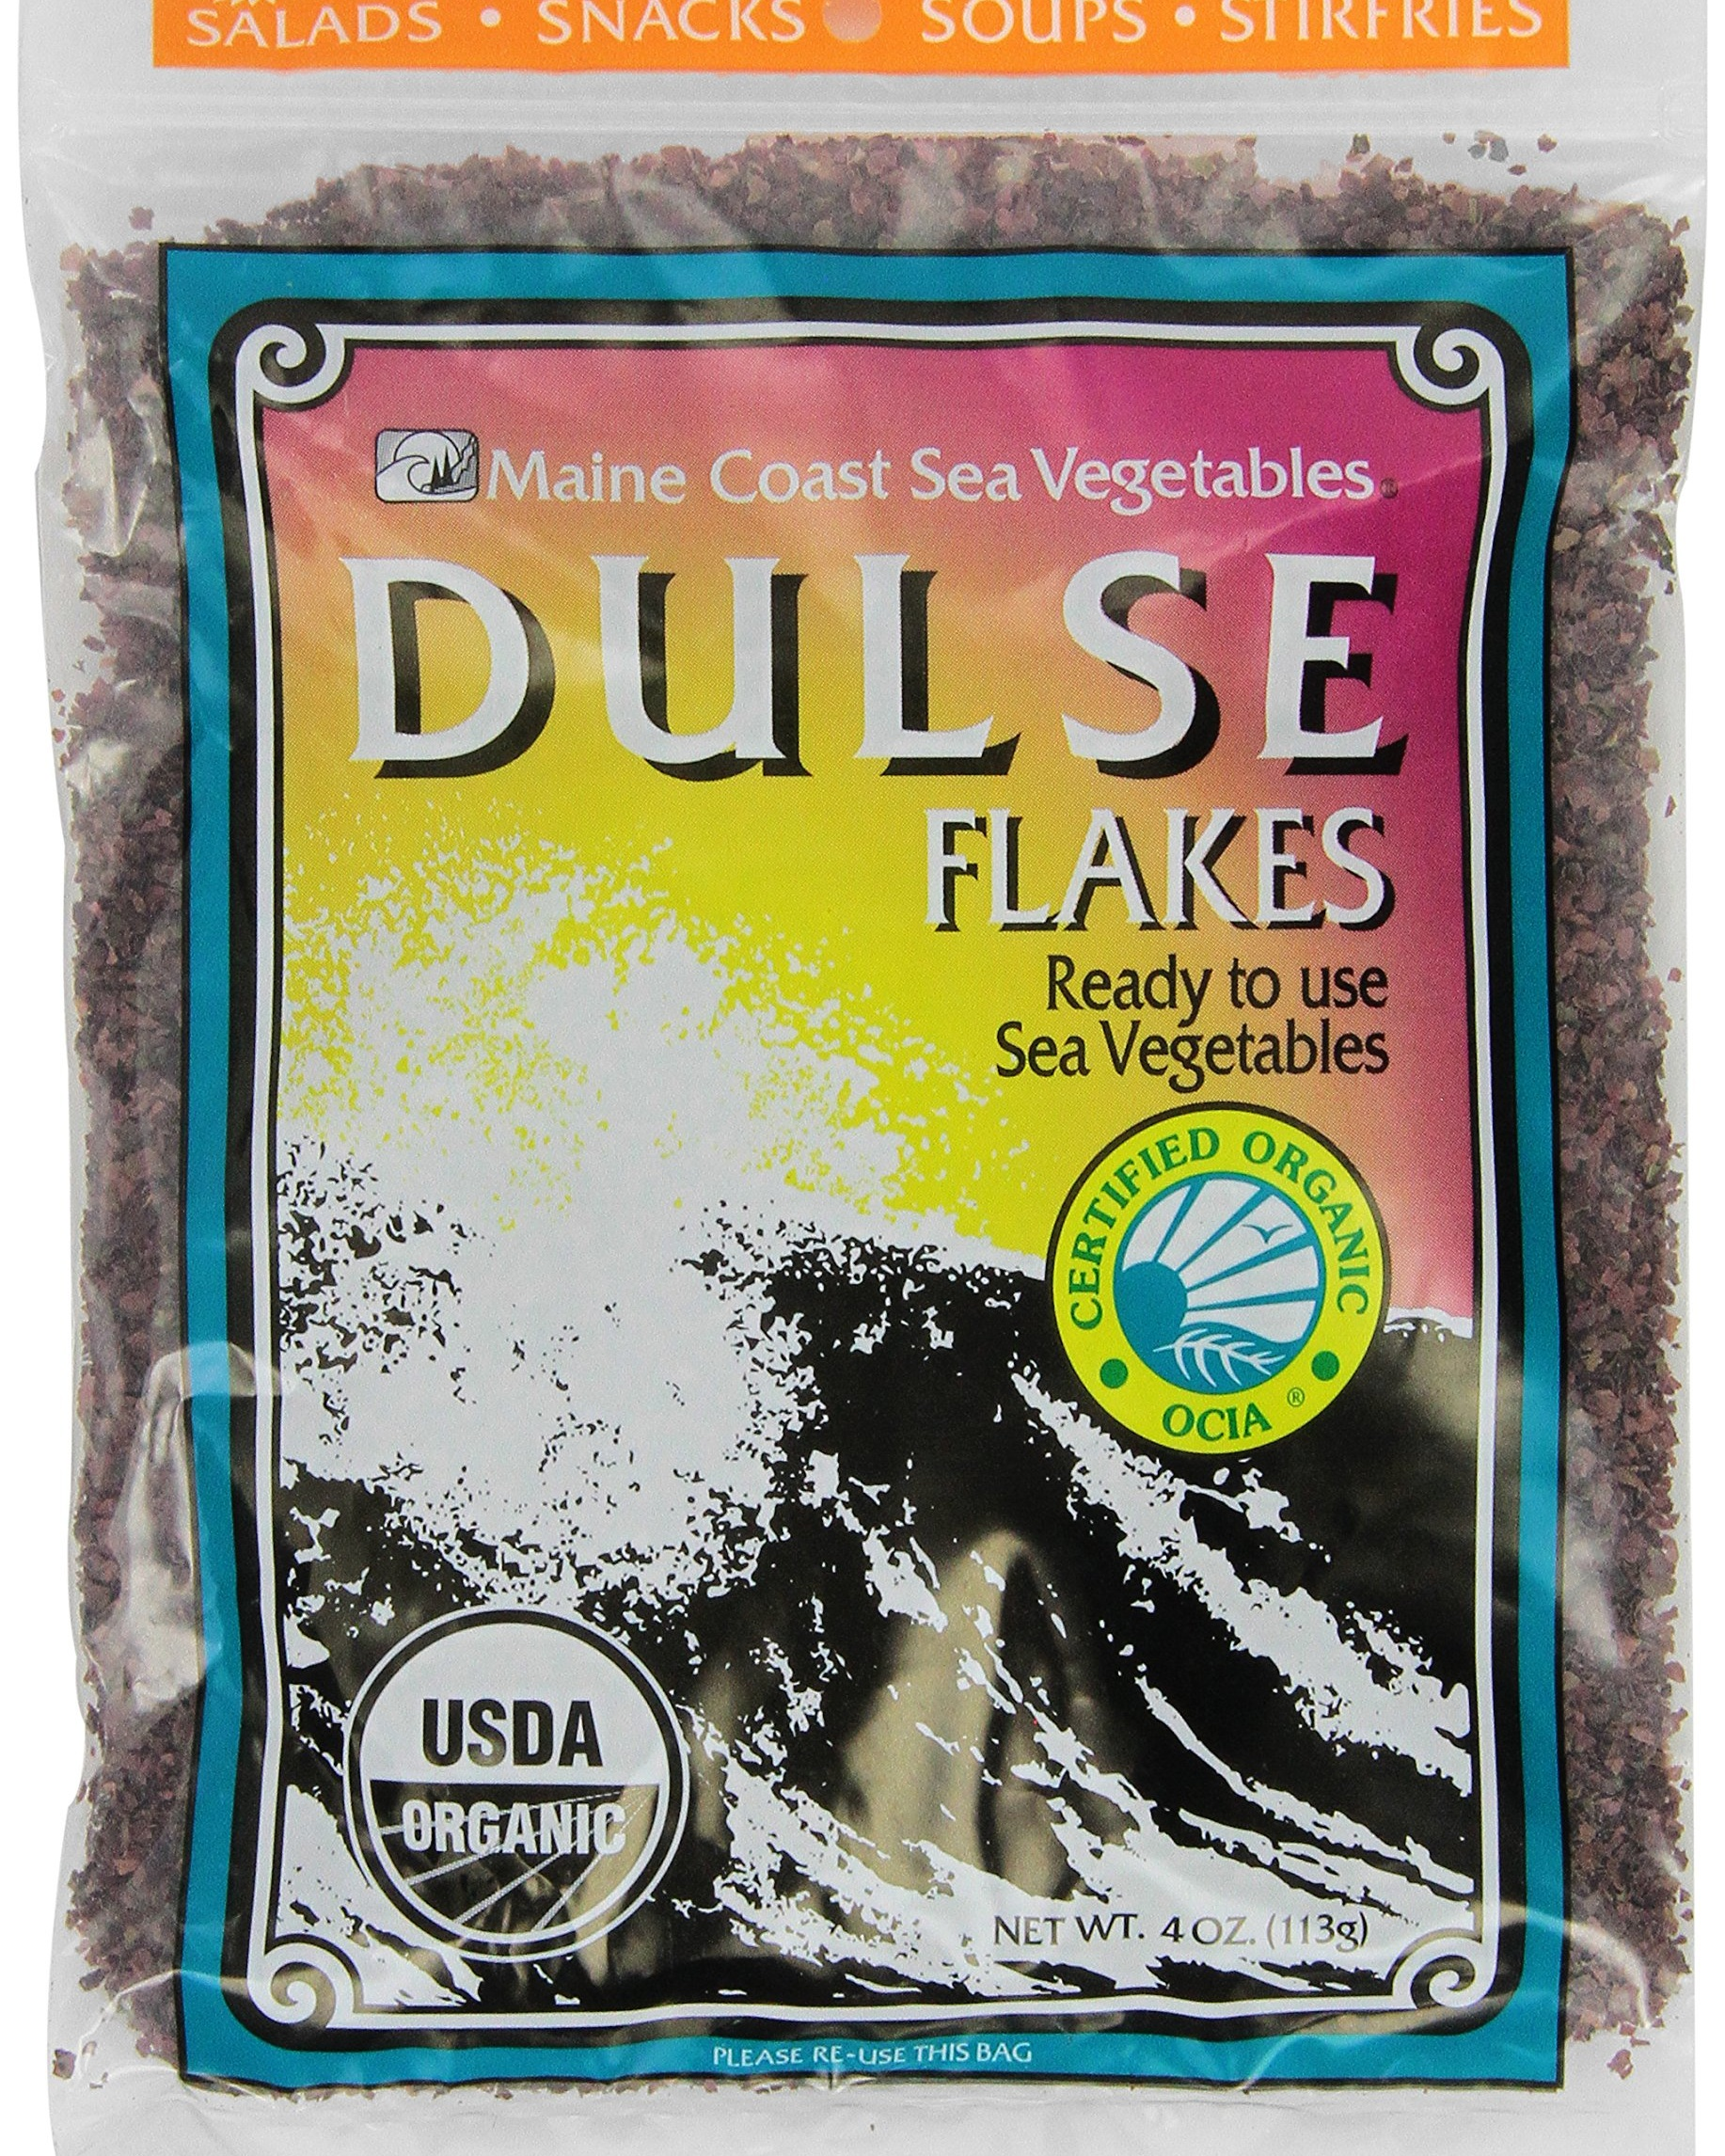 Whole dulse seaweed flakes.